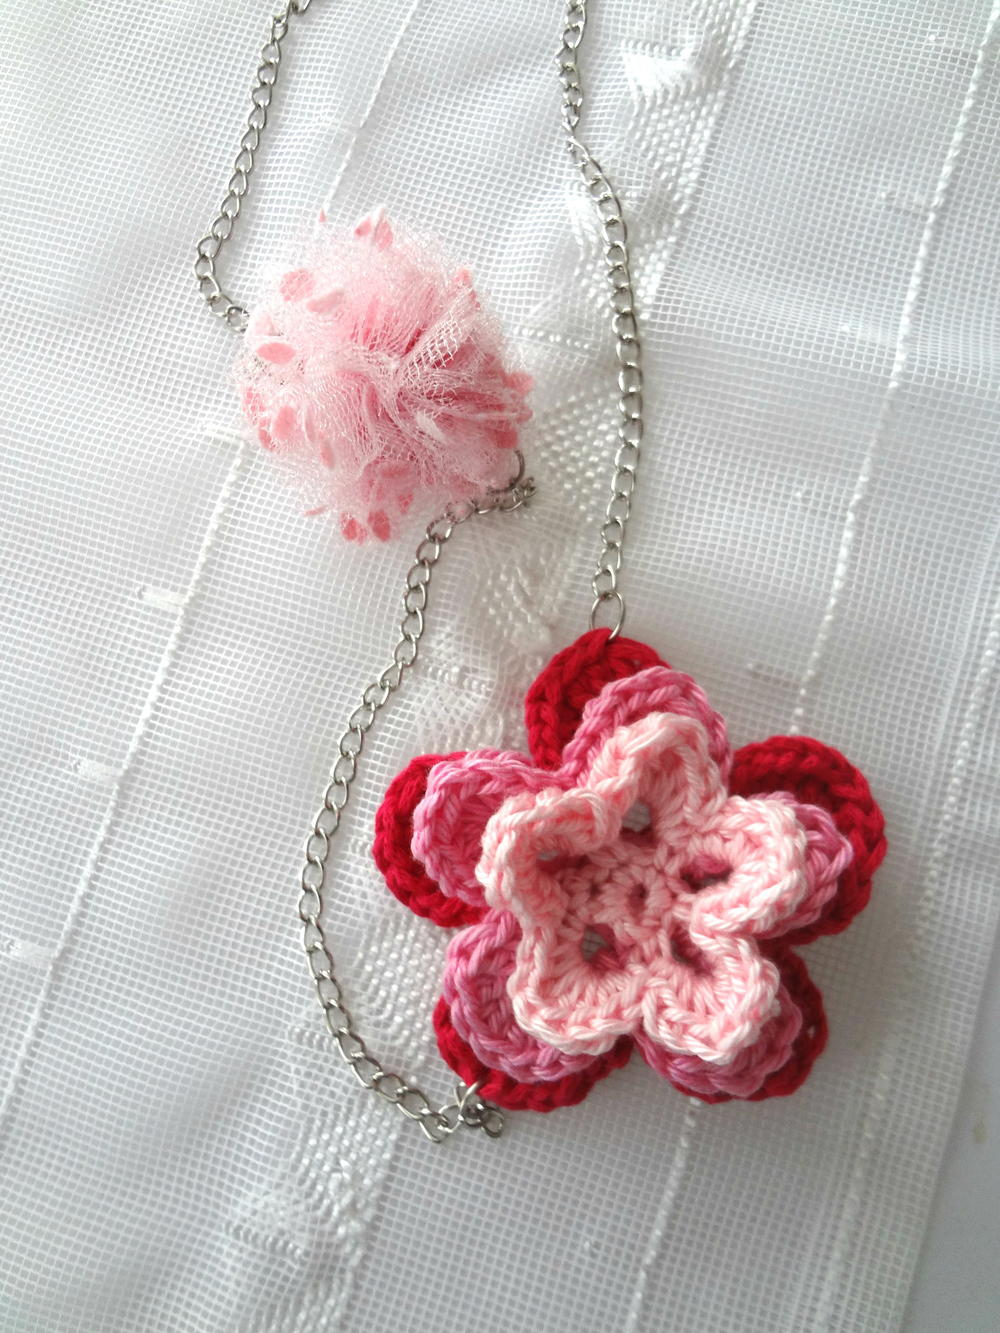 Free Crochet Wedding Jewelry Patterns : Pom-Pom and Crochet Flower Necklace AllFreeJewelryMaking.com